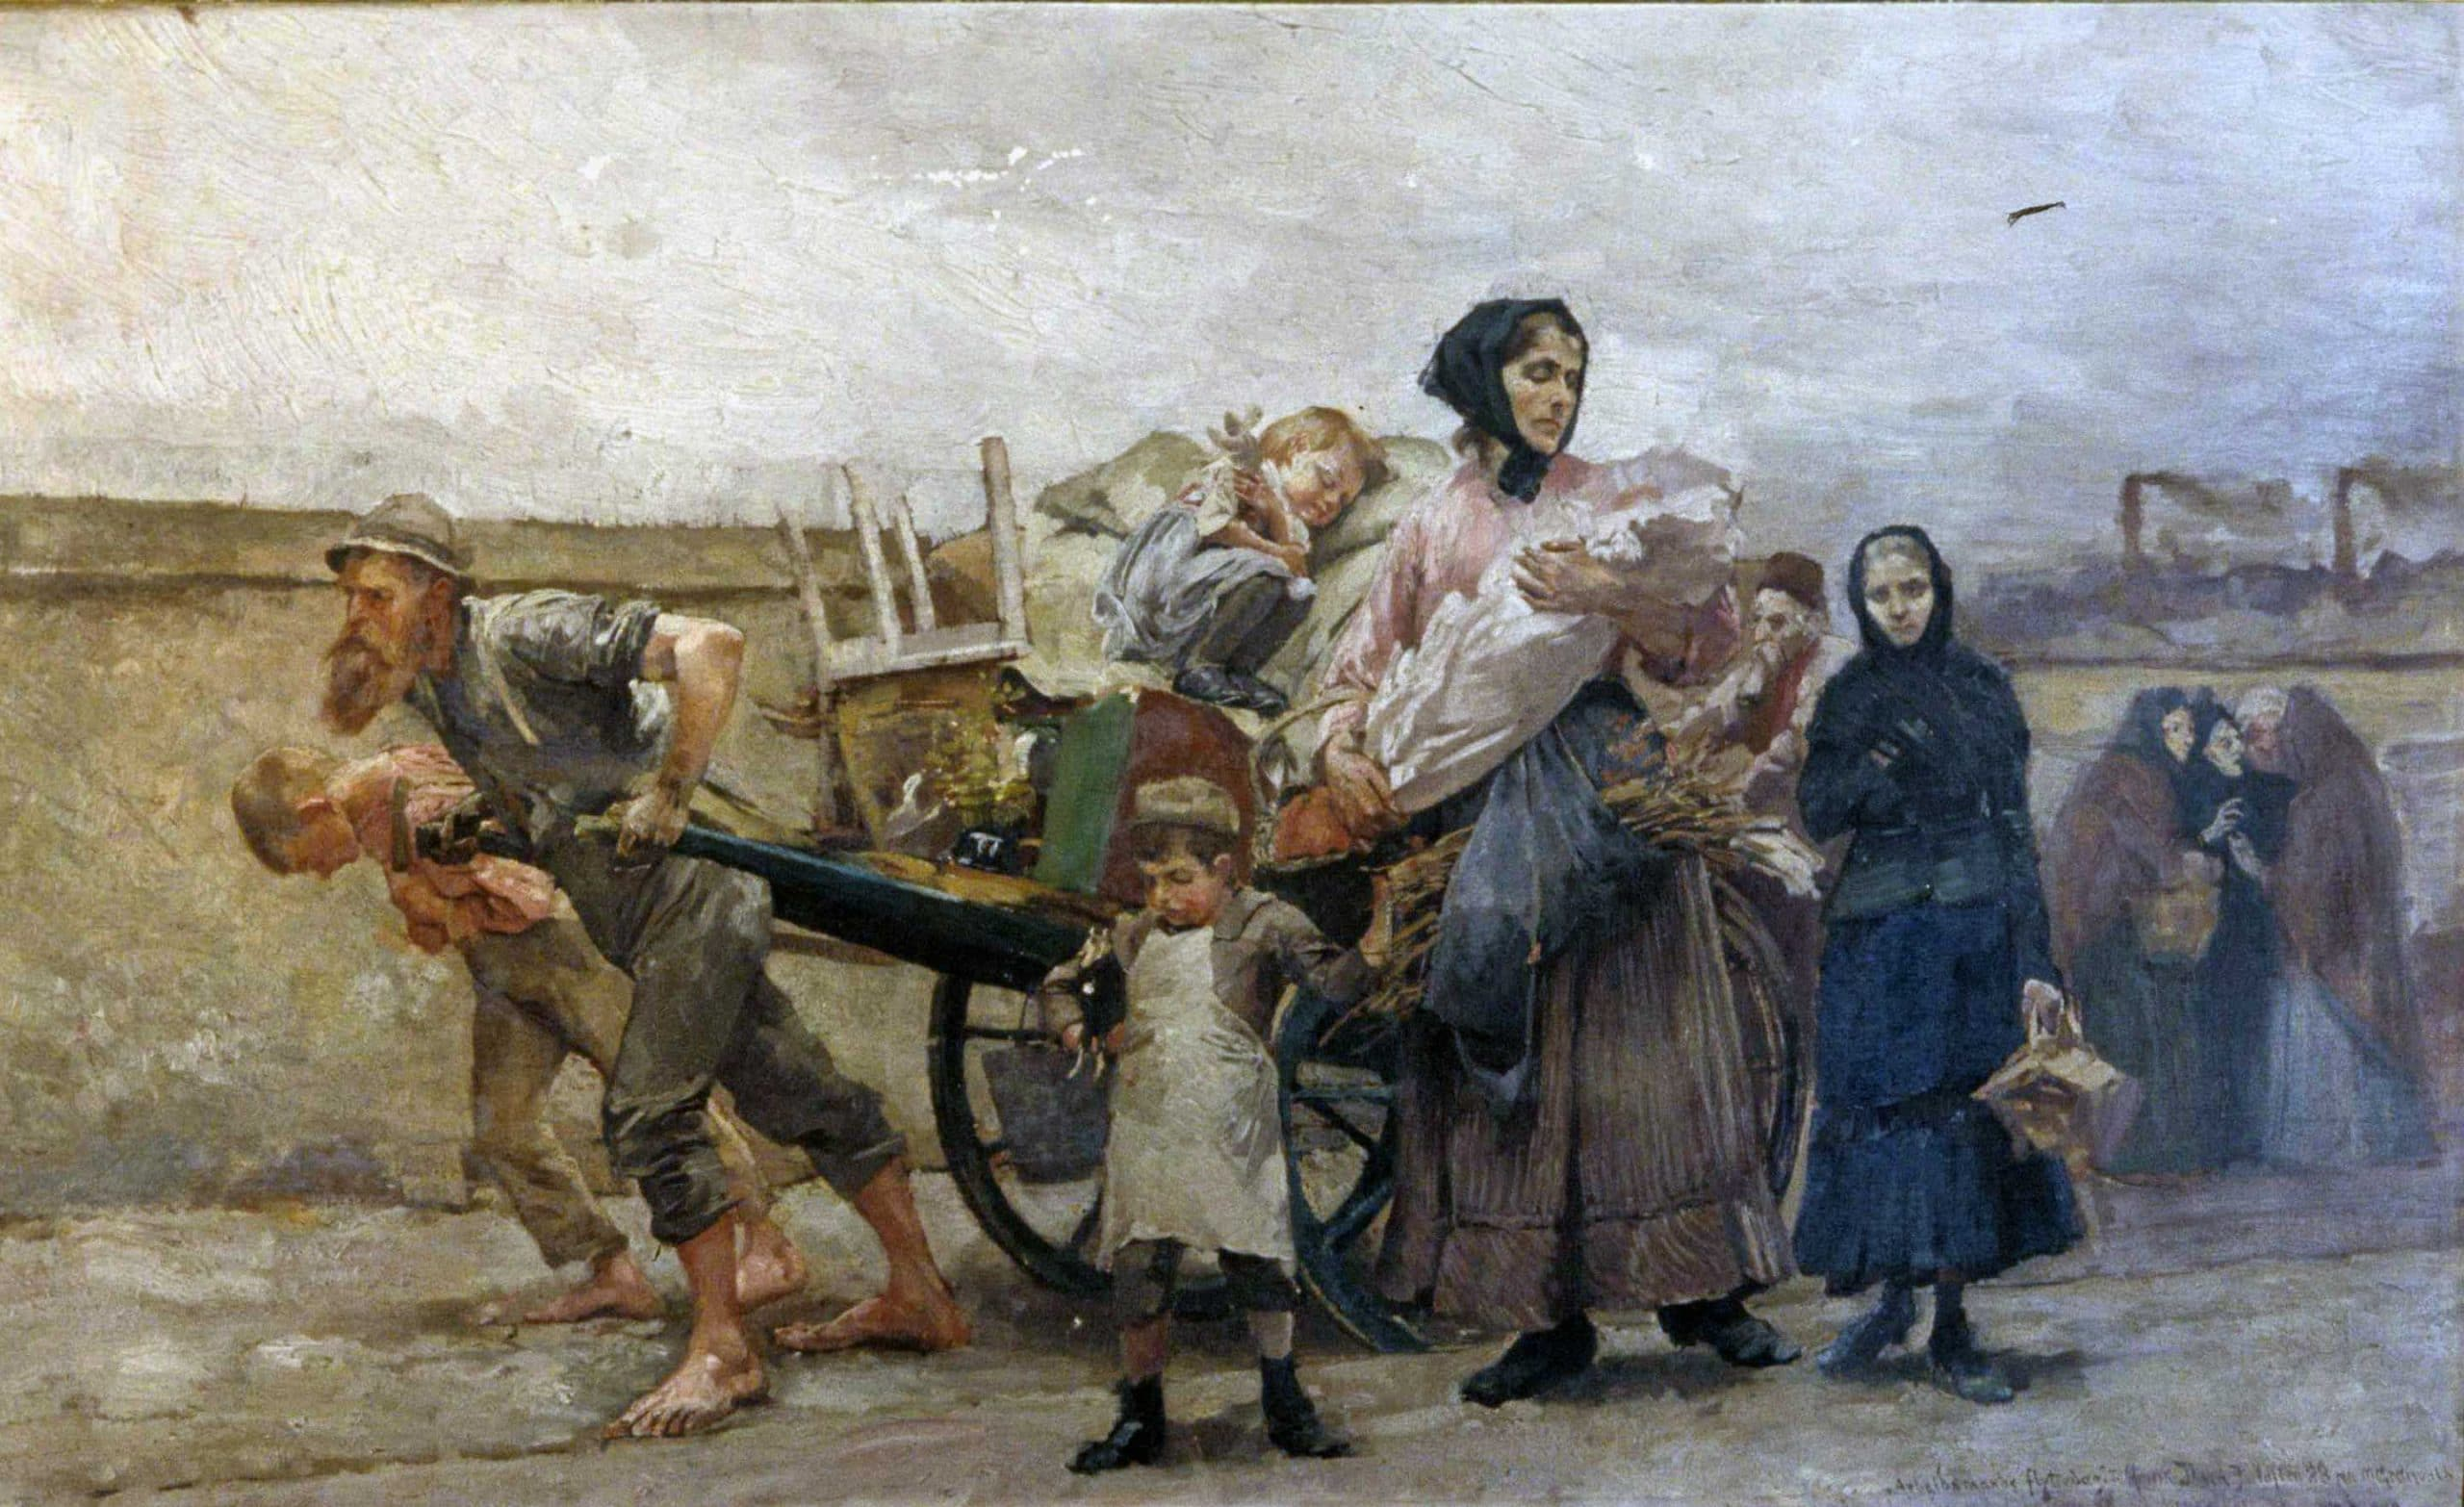 A workman's moving day. Oil painting by Marcus Grønvold. Belonged to Henrik Ibsen. | Photo: Erik Thallaug - Ibsenmuseet cc by-sa.